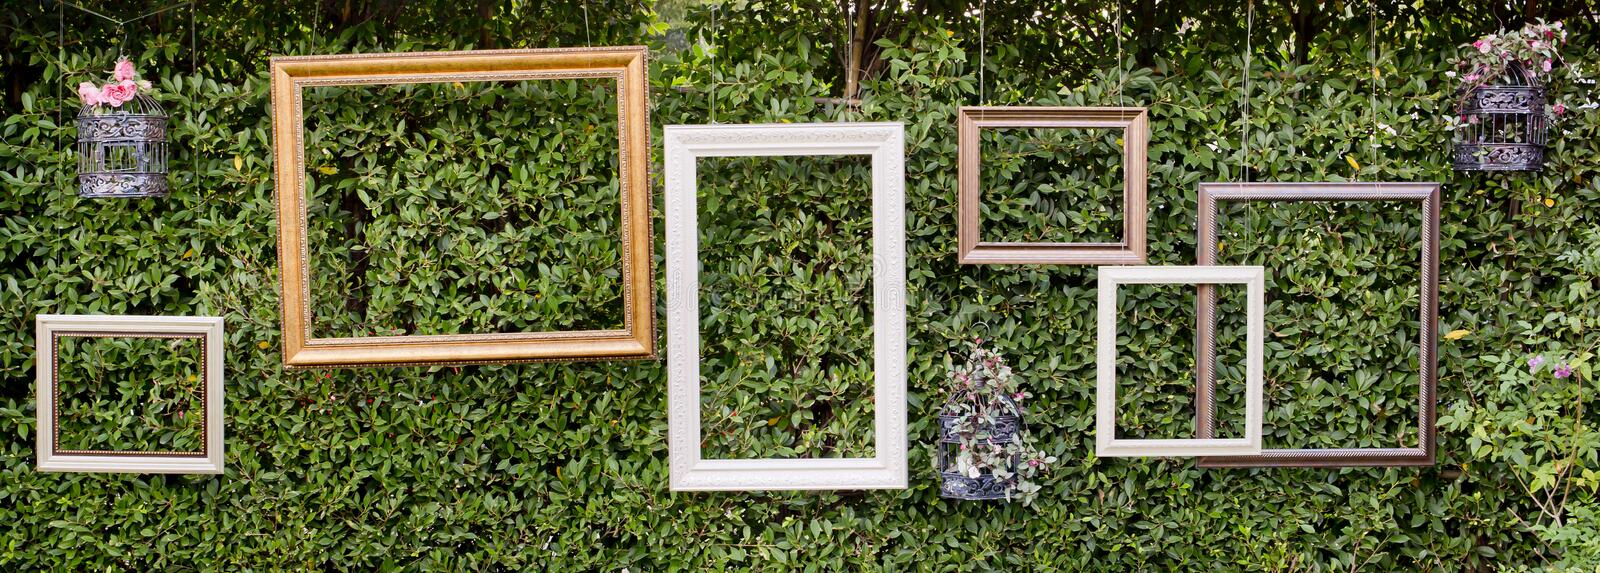 Attractive Download Blank Photo Frames Against Green Small Tree Wall. Stock Photo    Image Of Frames